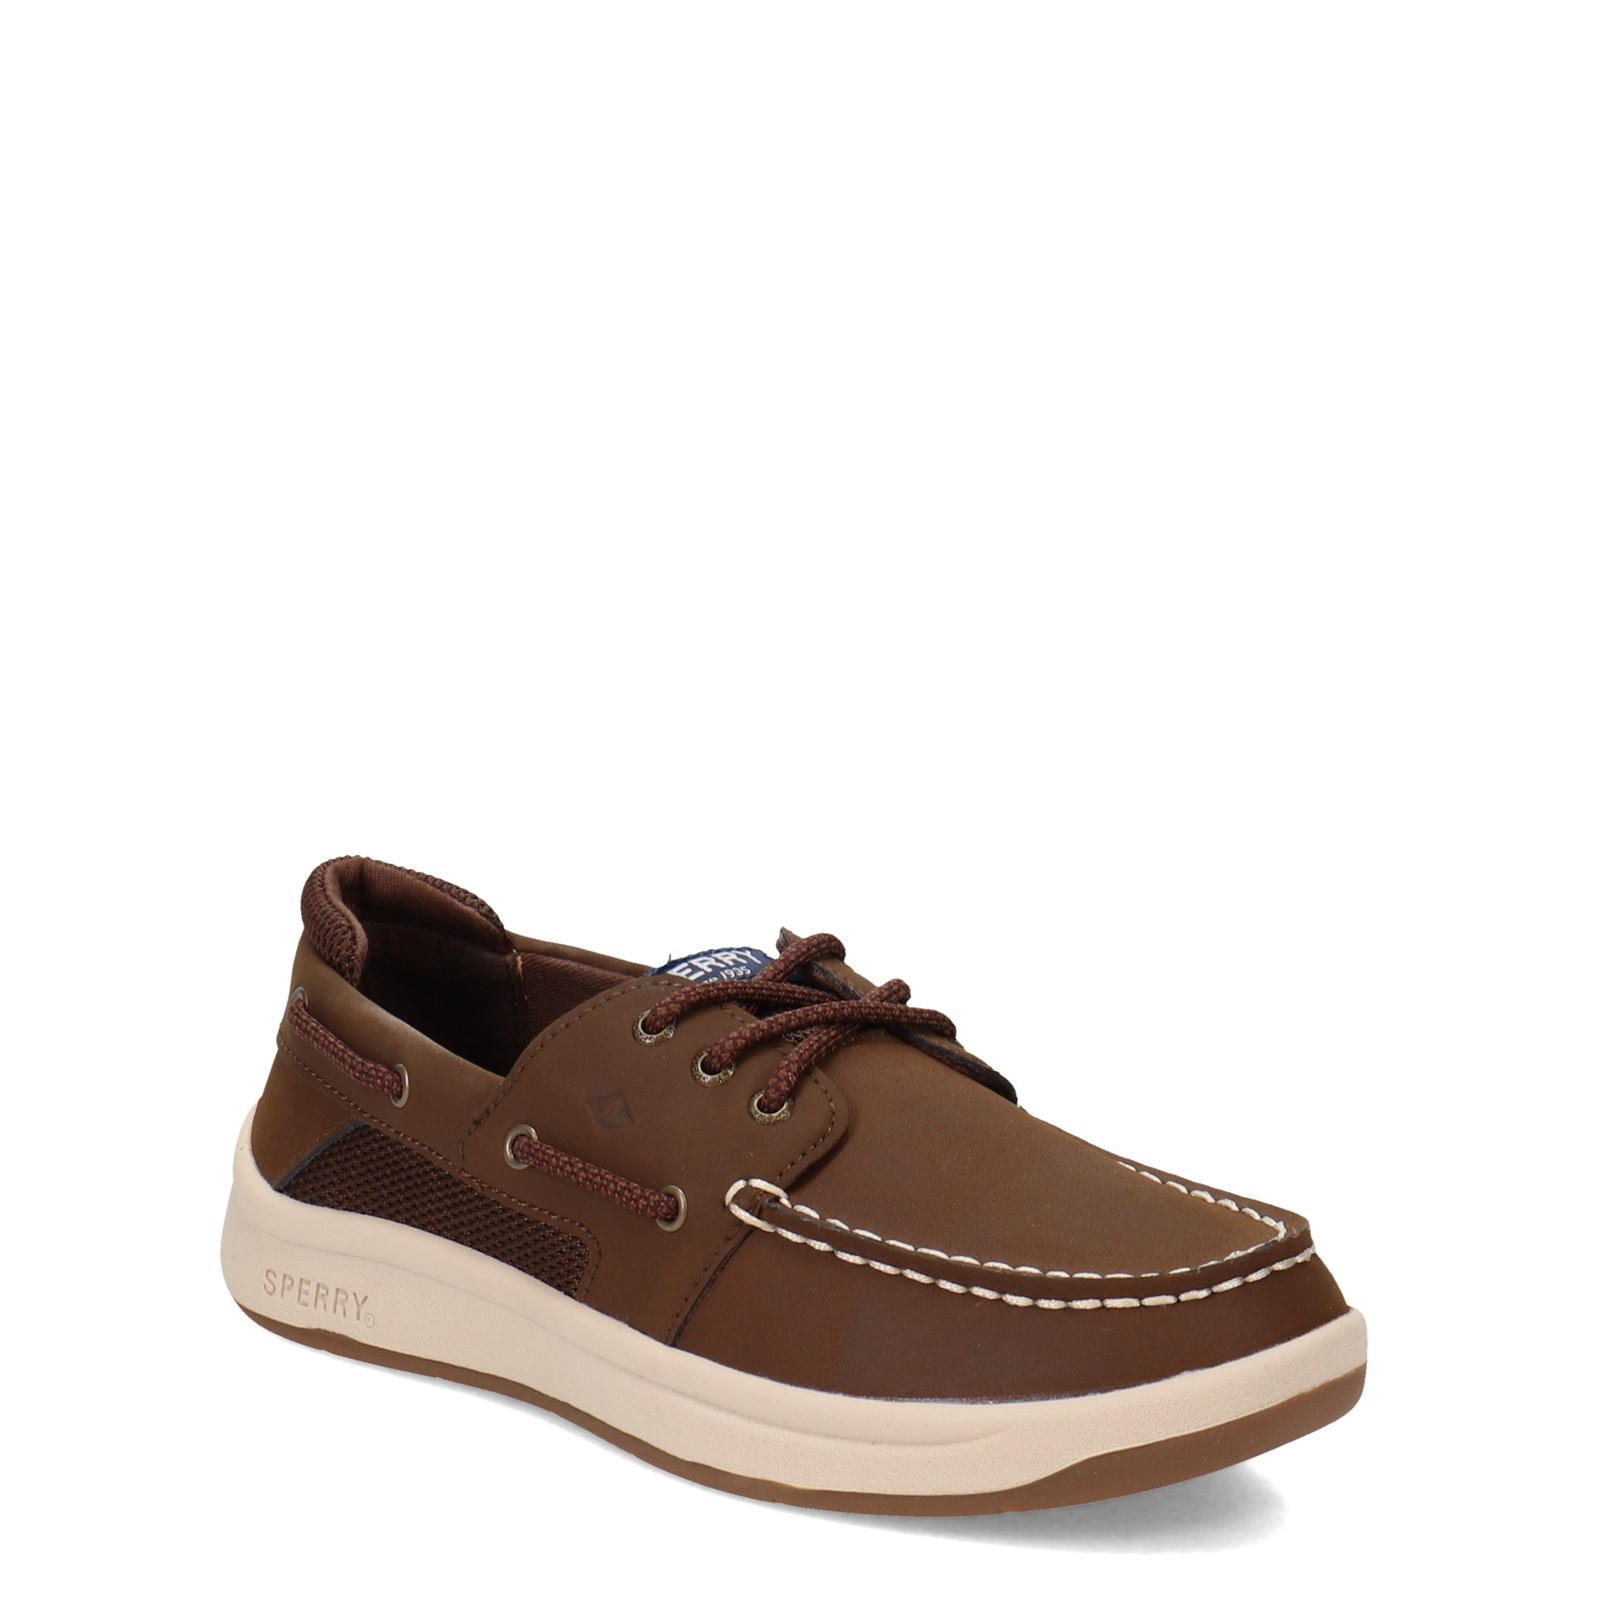 Boy's Sperry, Convoy Boat Shoe - Little Kid & Big Kid